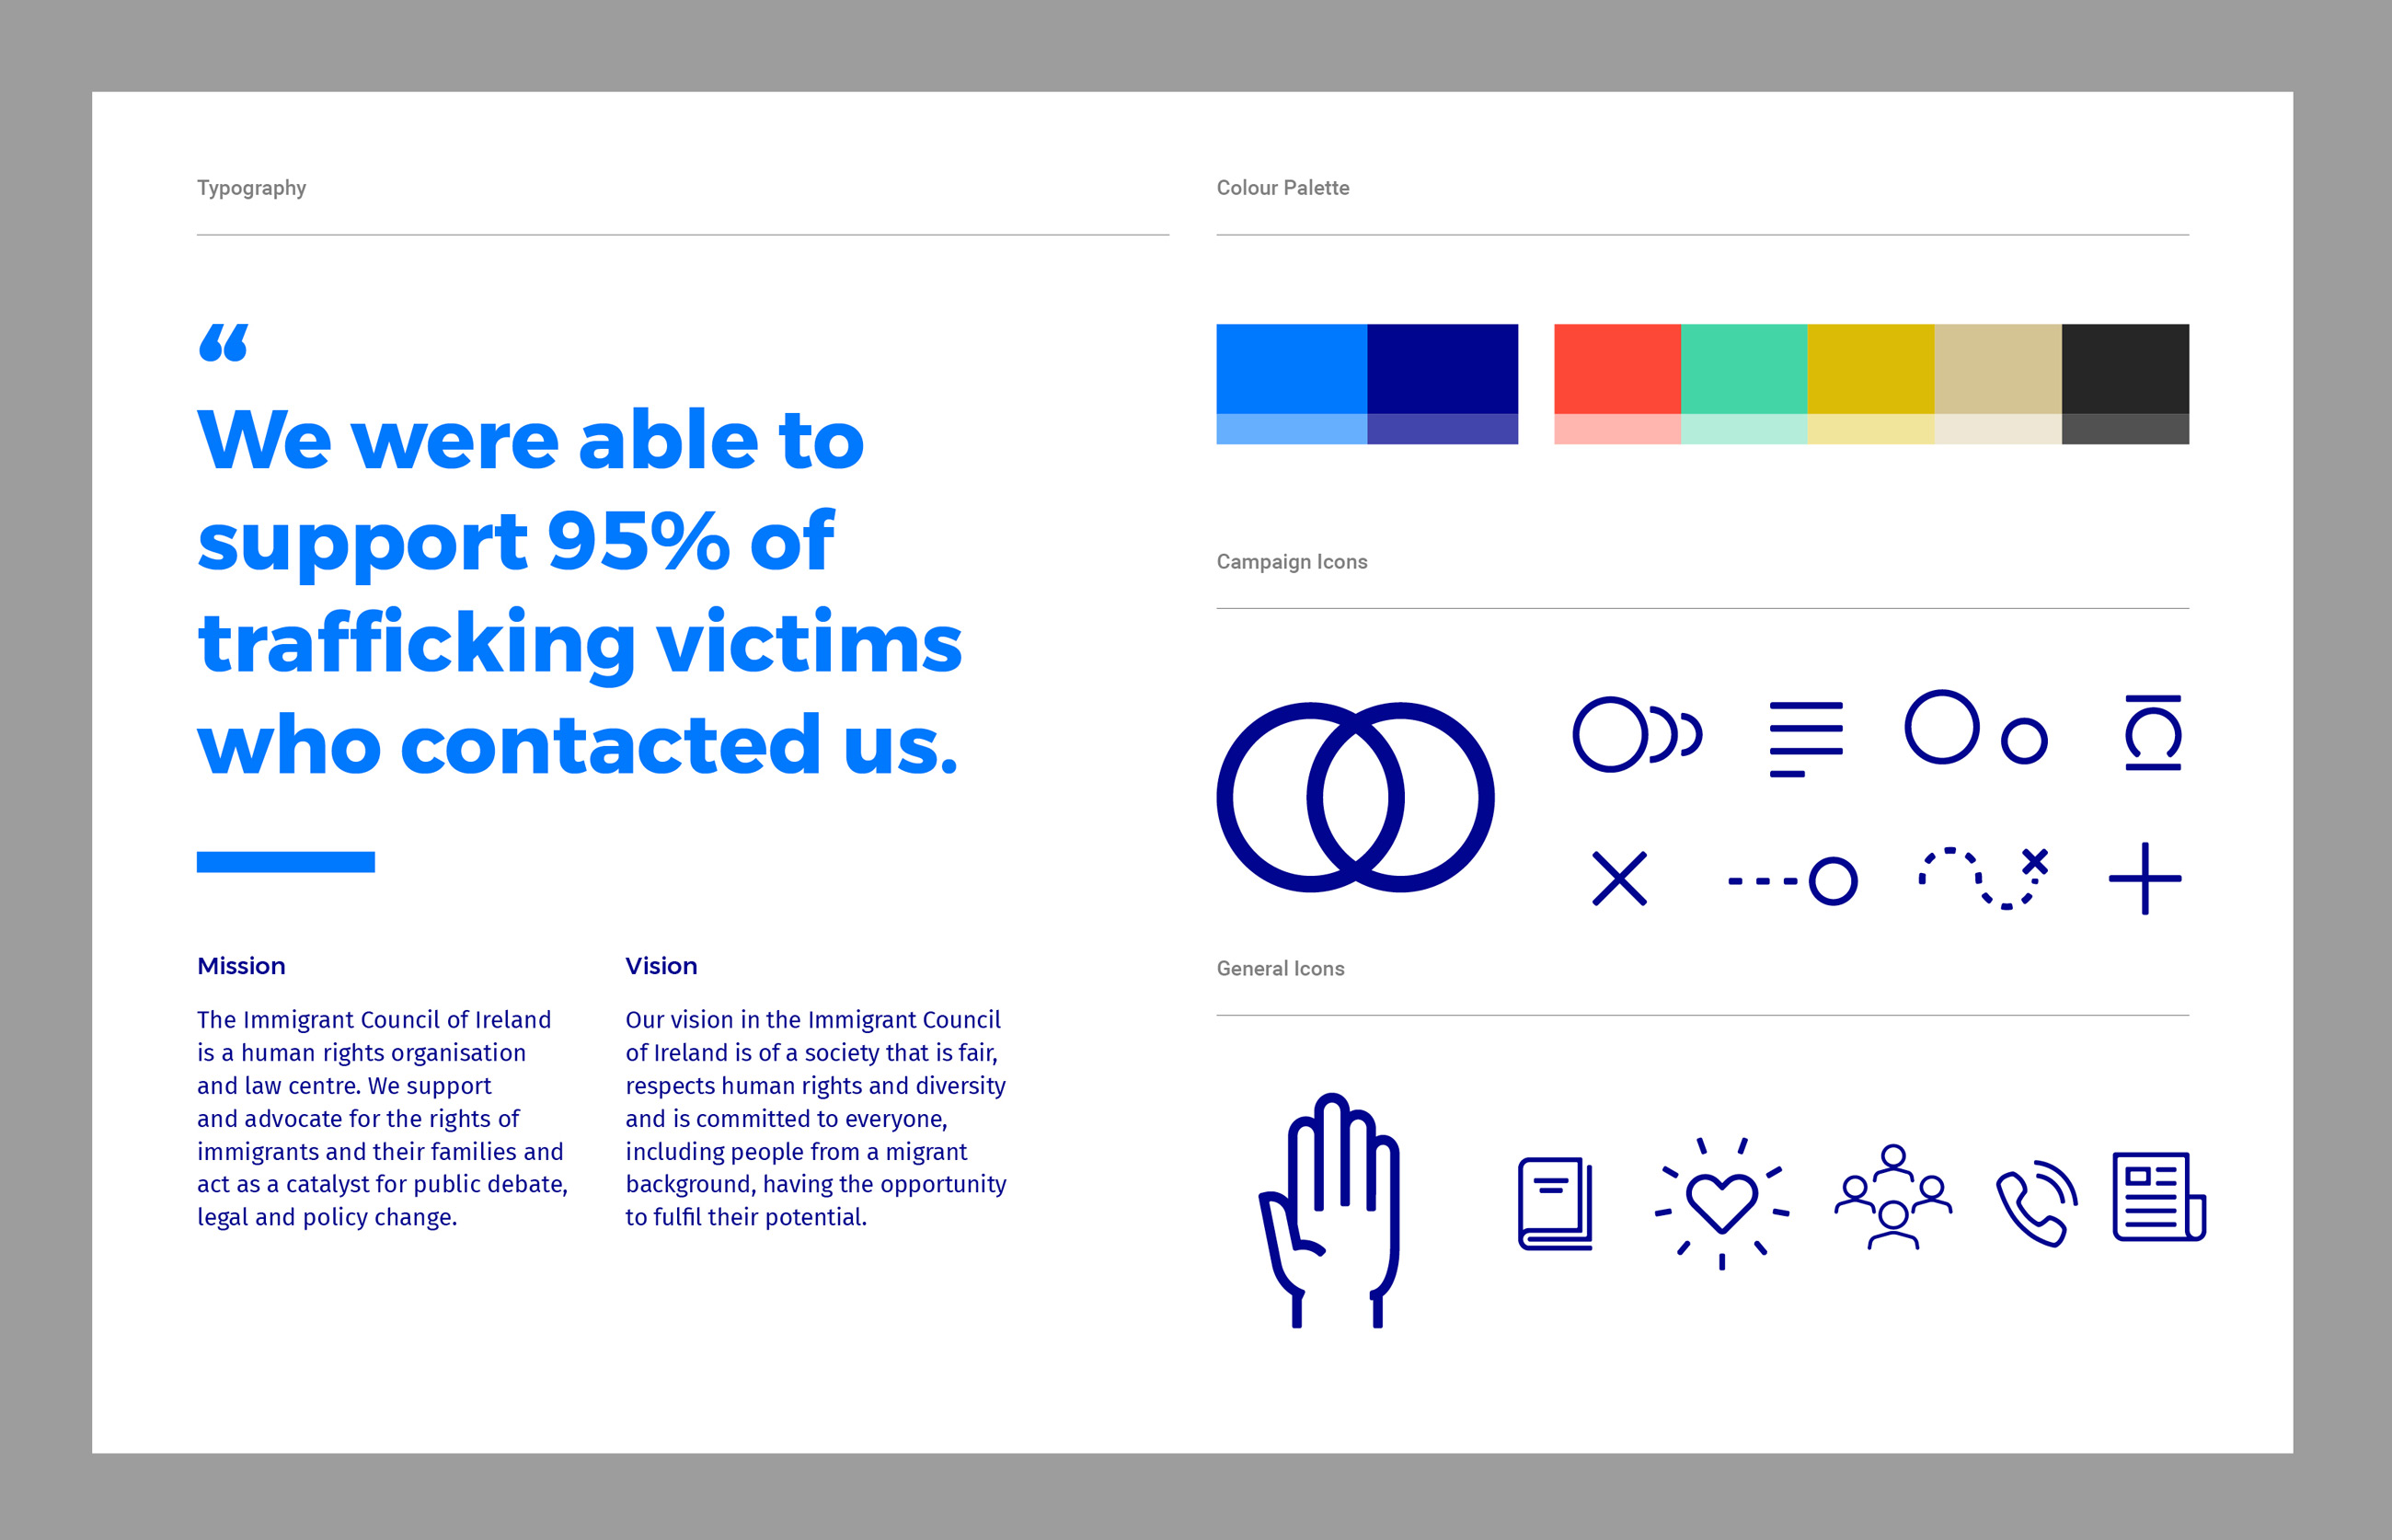 Immigrant Council of Ireland Brand Development brand guidelines for typography, the colour palette, and iconography